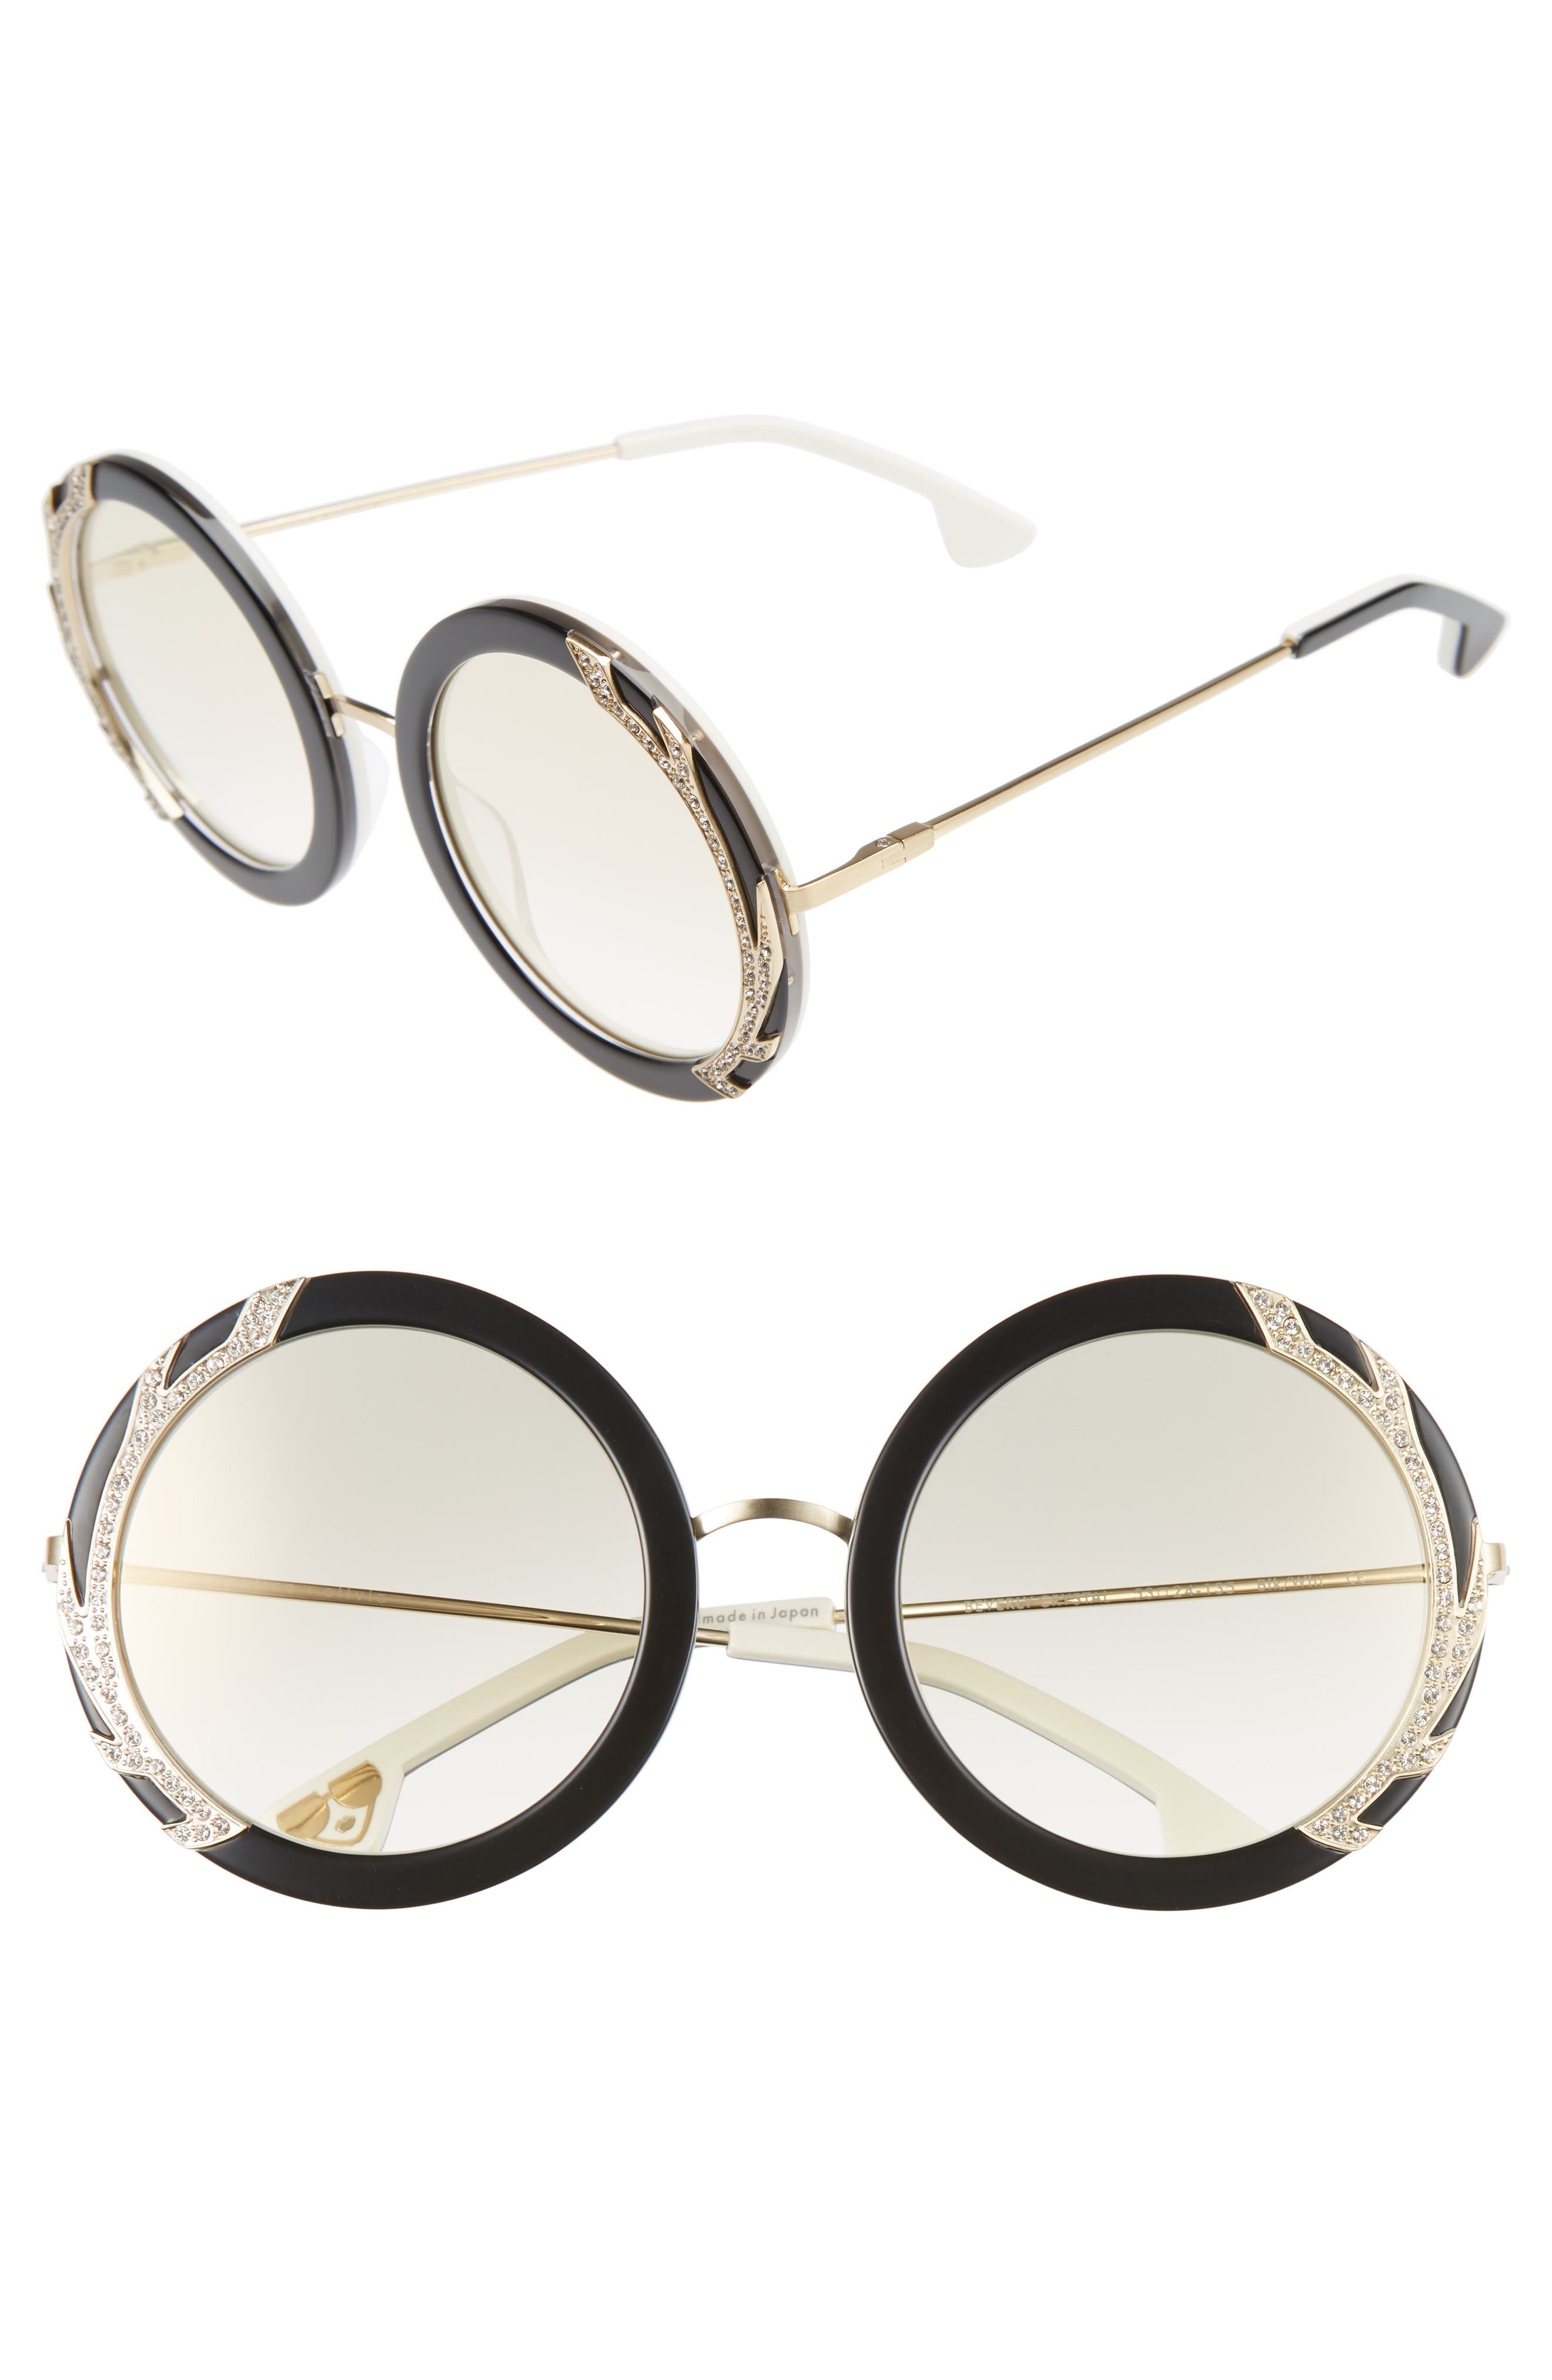 Alternate Image 1 Selected - Alice + Olivia Beverly Crystal 53mm Special Fit Round Sunglasses